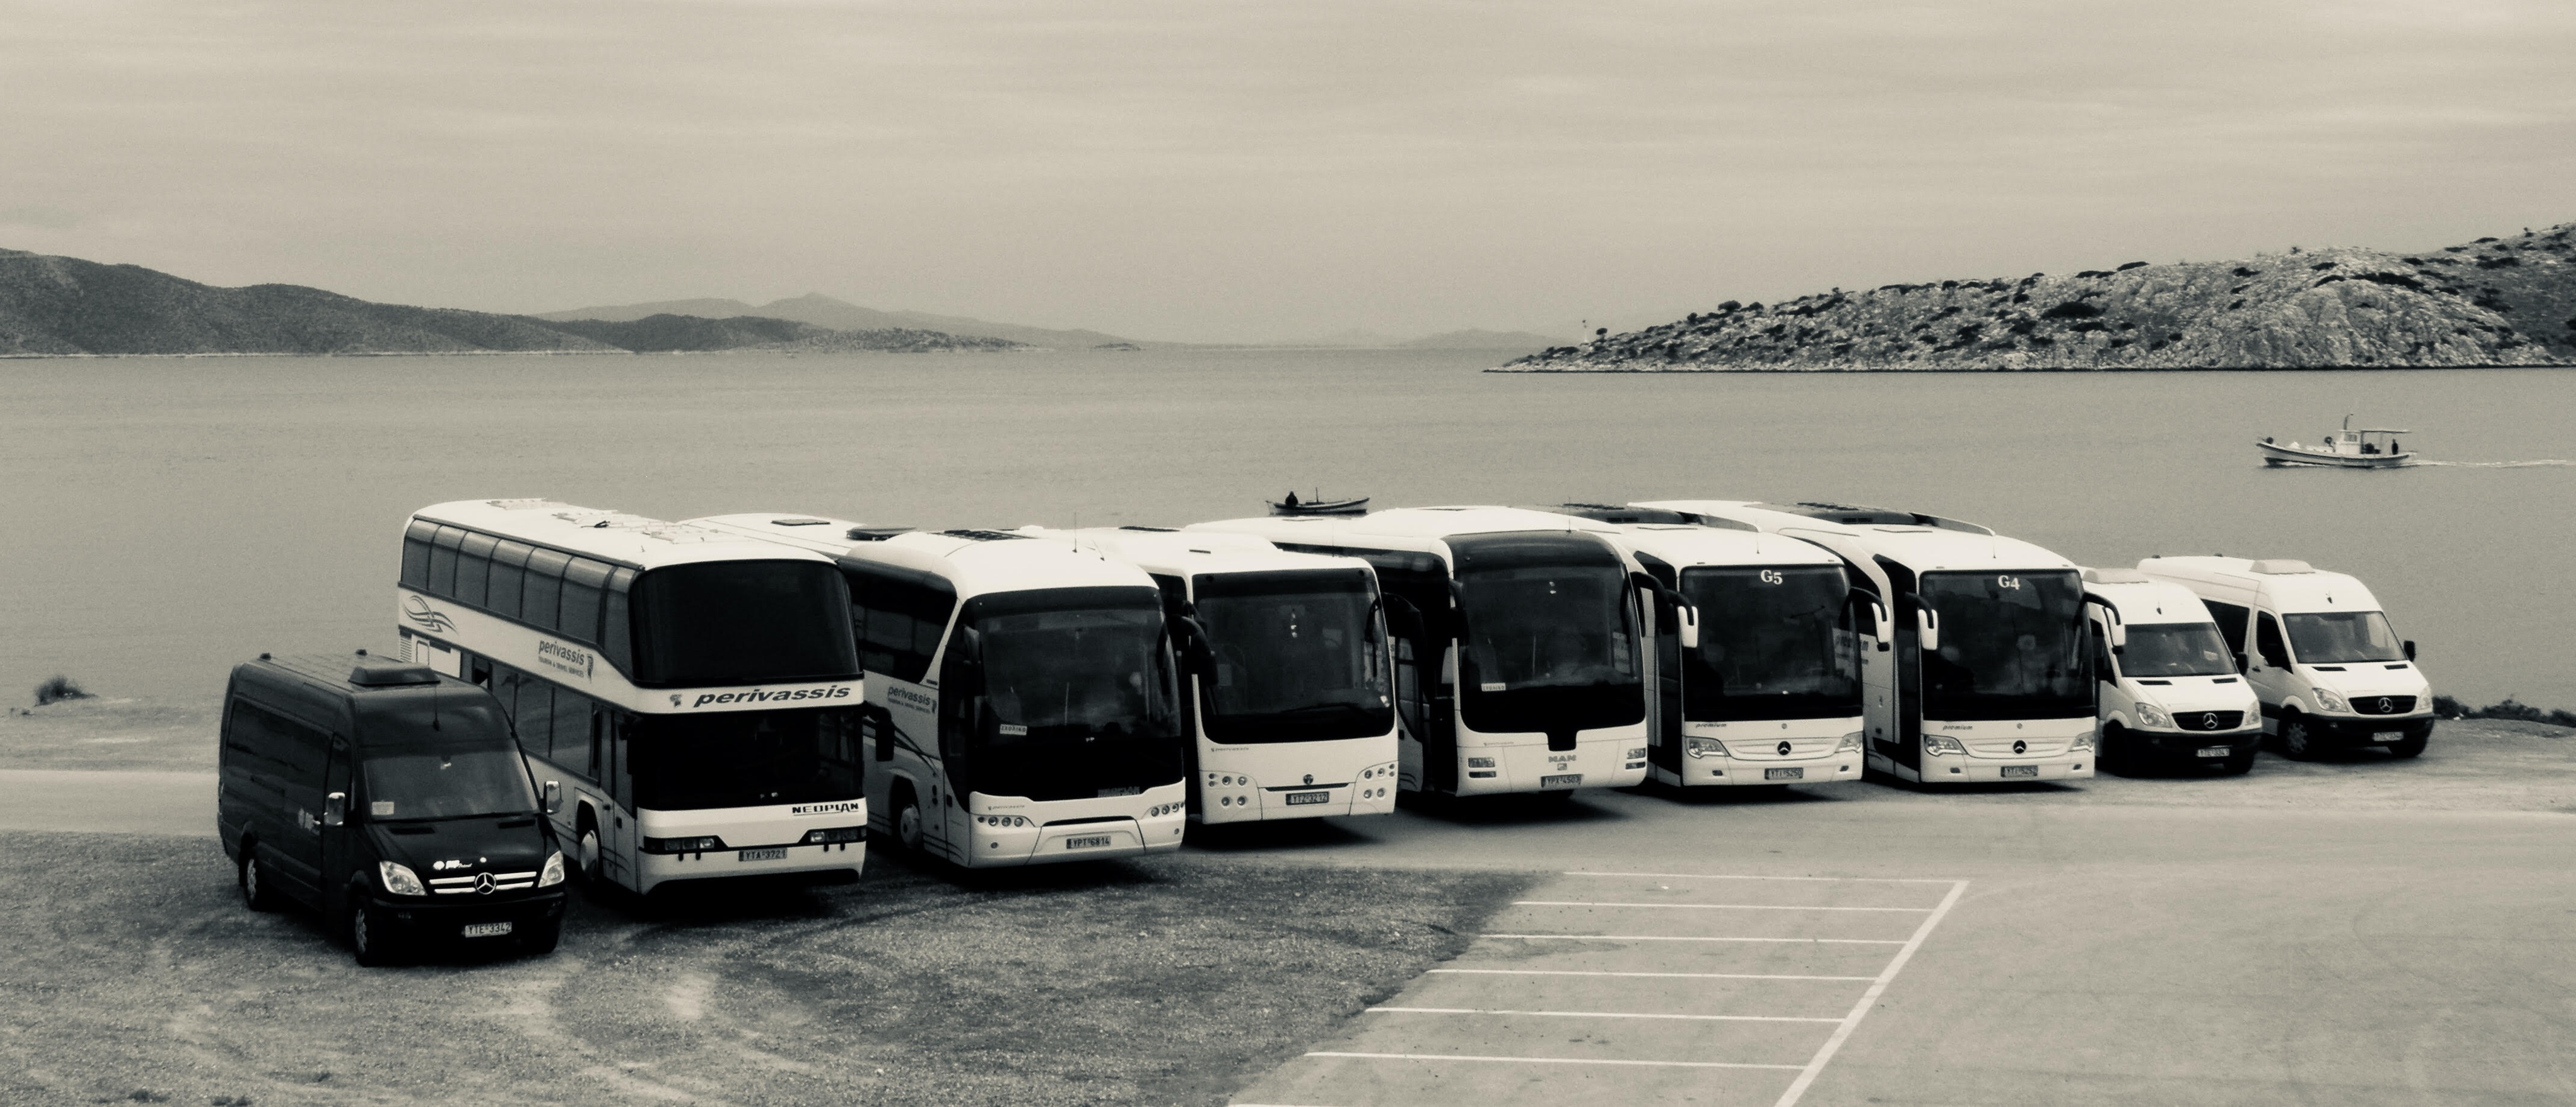 35 MODERN BUSES AT YOUR AVAILABILITY